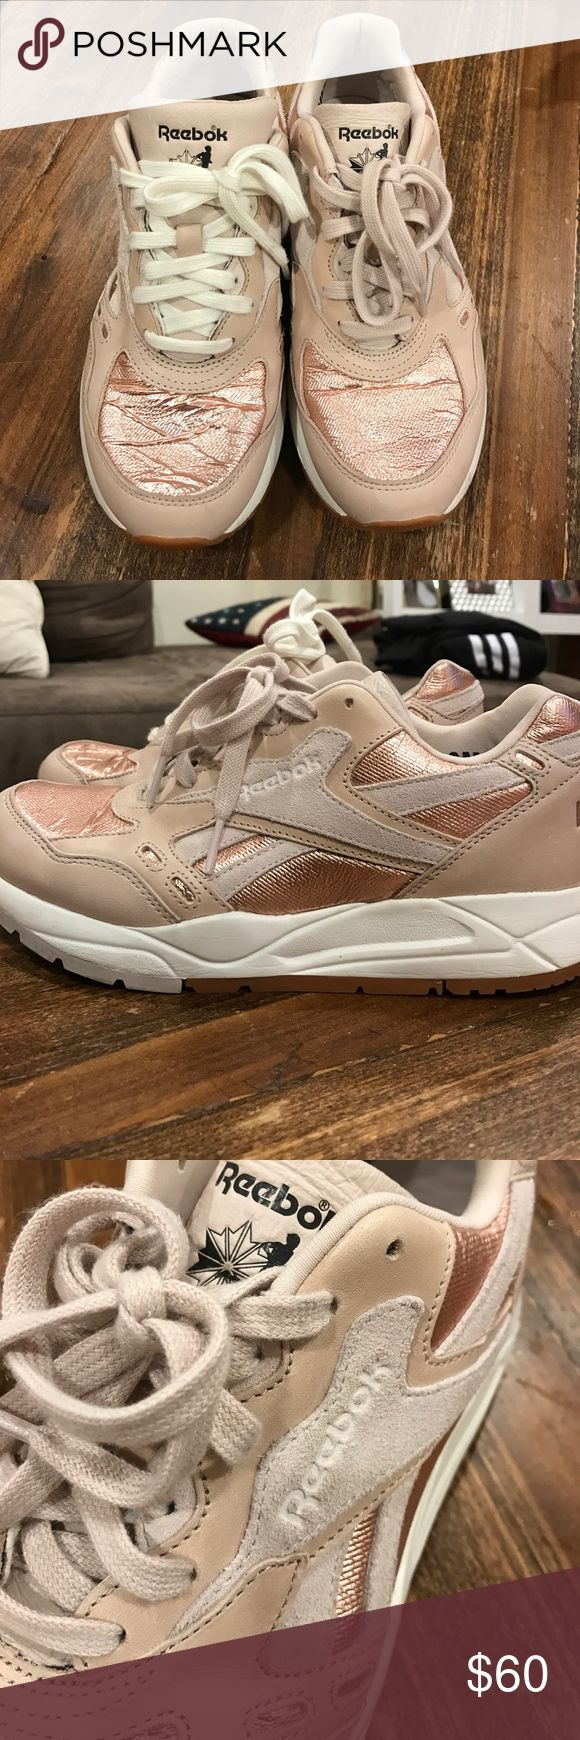 Rose Gold Reebok Classic- only worn once! Metallic tipped, Rose Gold Reebok Classics. Only worn once! Needs new shoelaces- came mismatched Reebok Shoes Sneakers